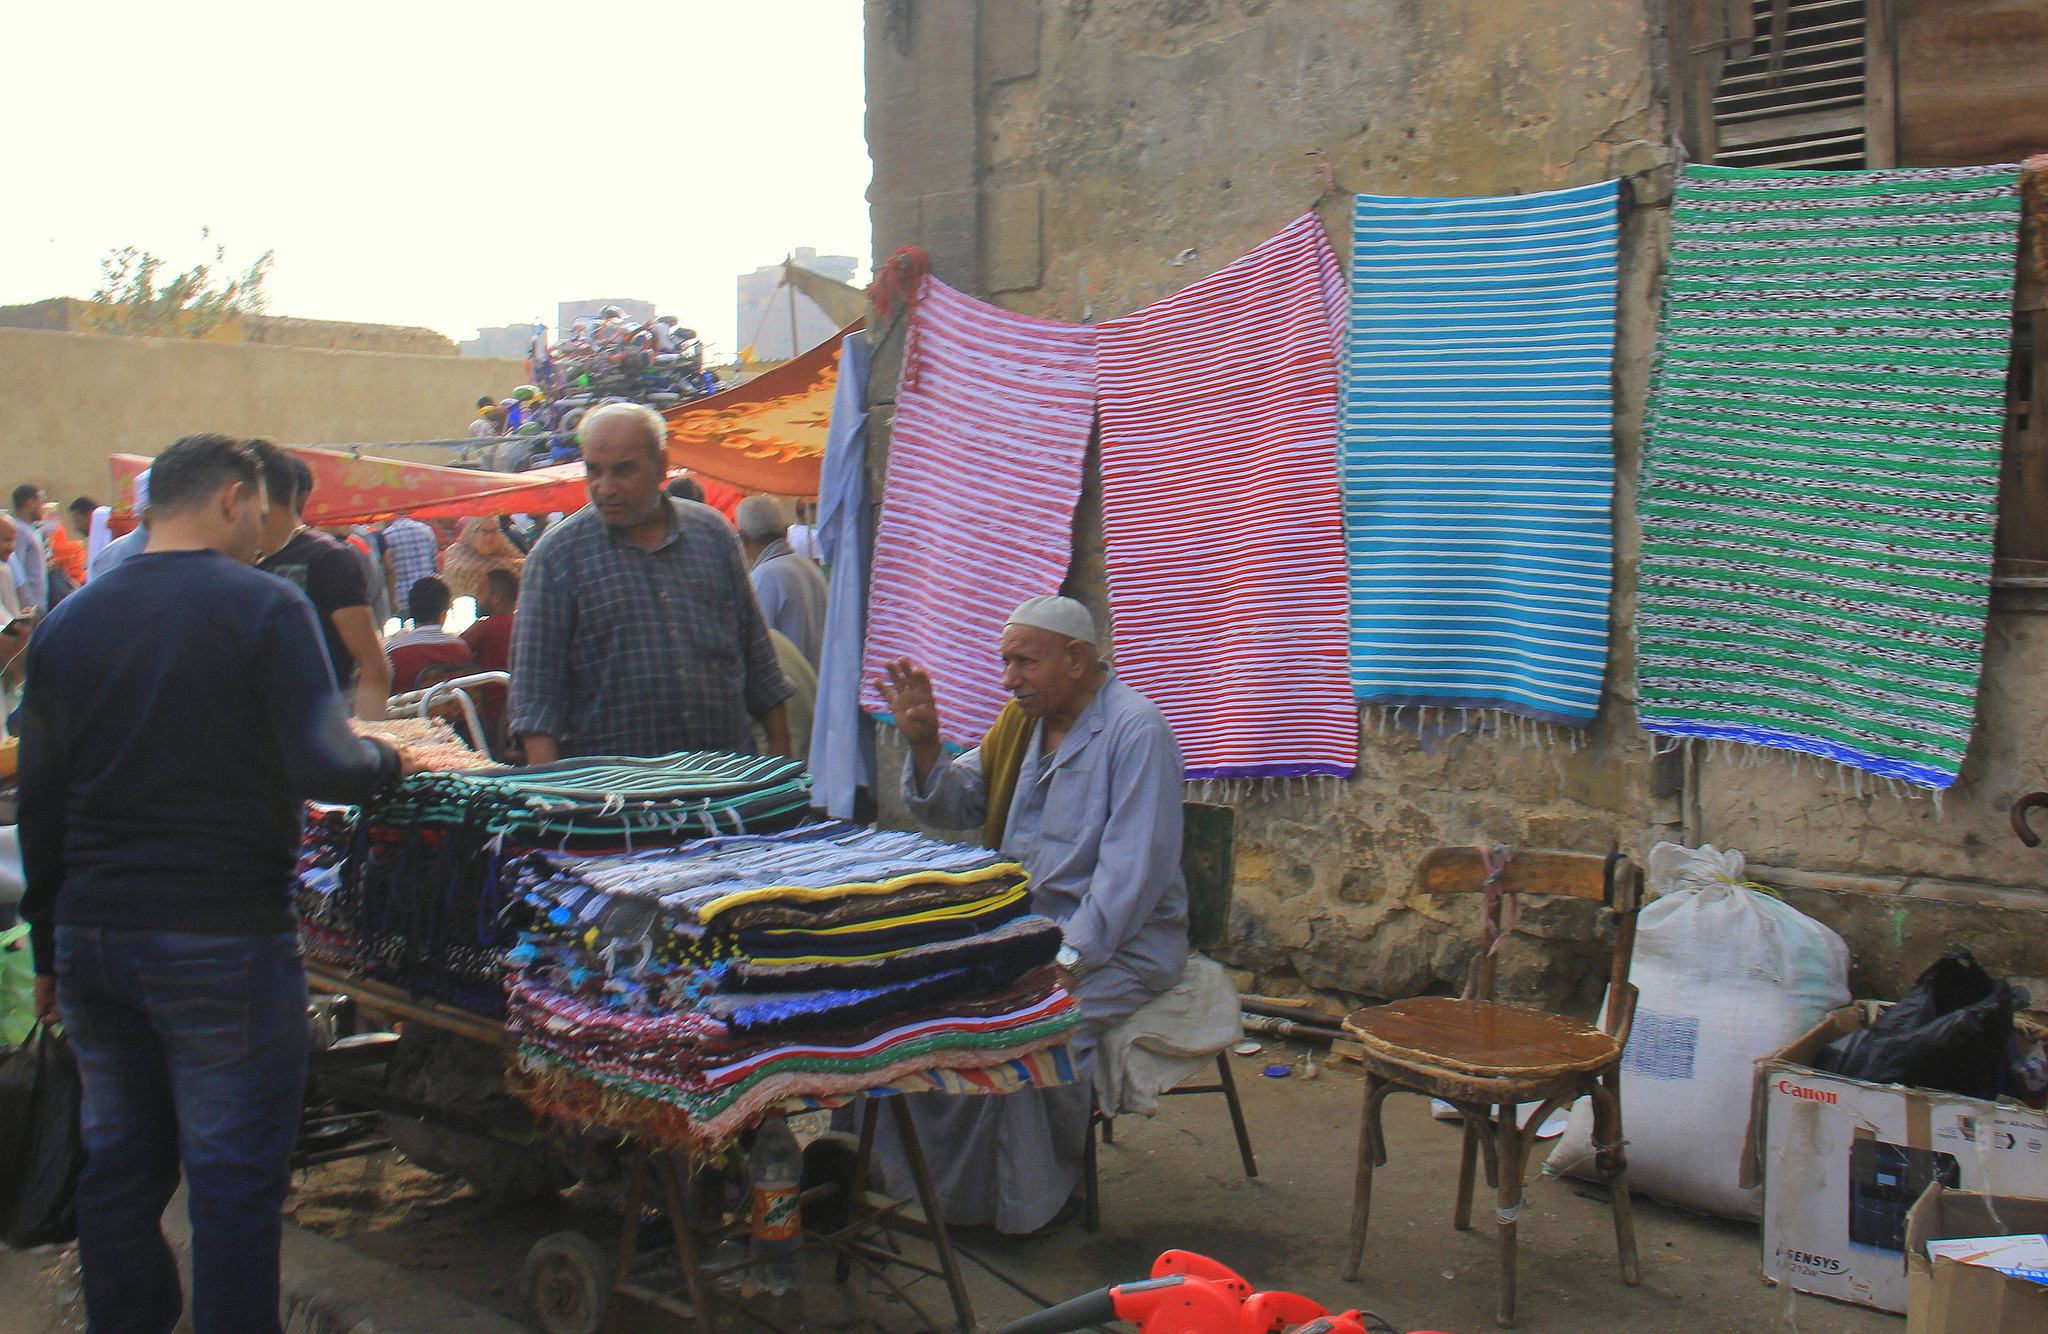 Rug seller bargaining at Friday Market